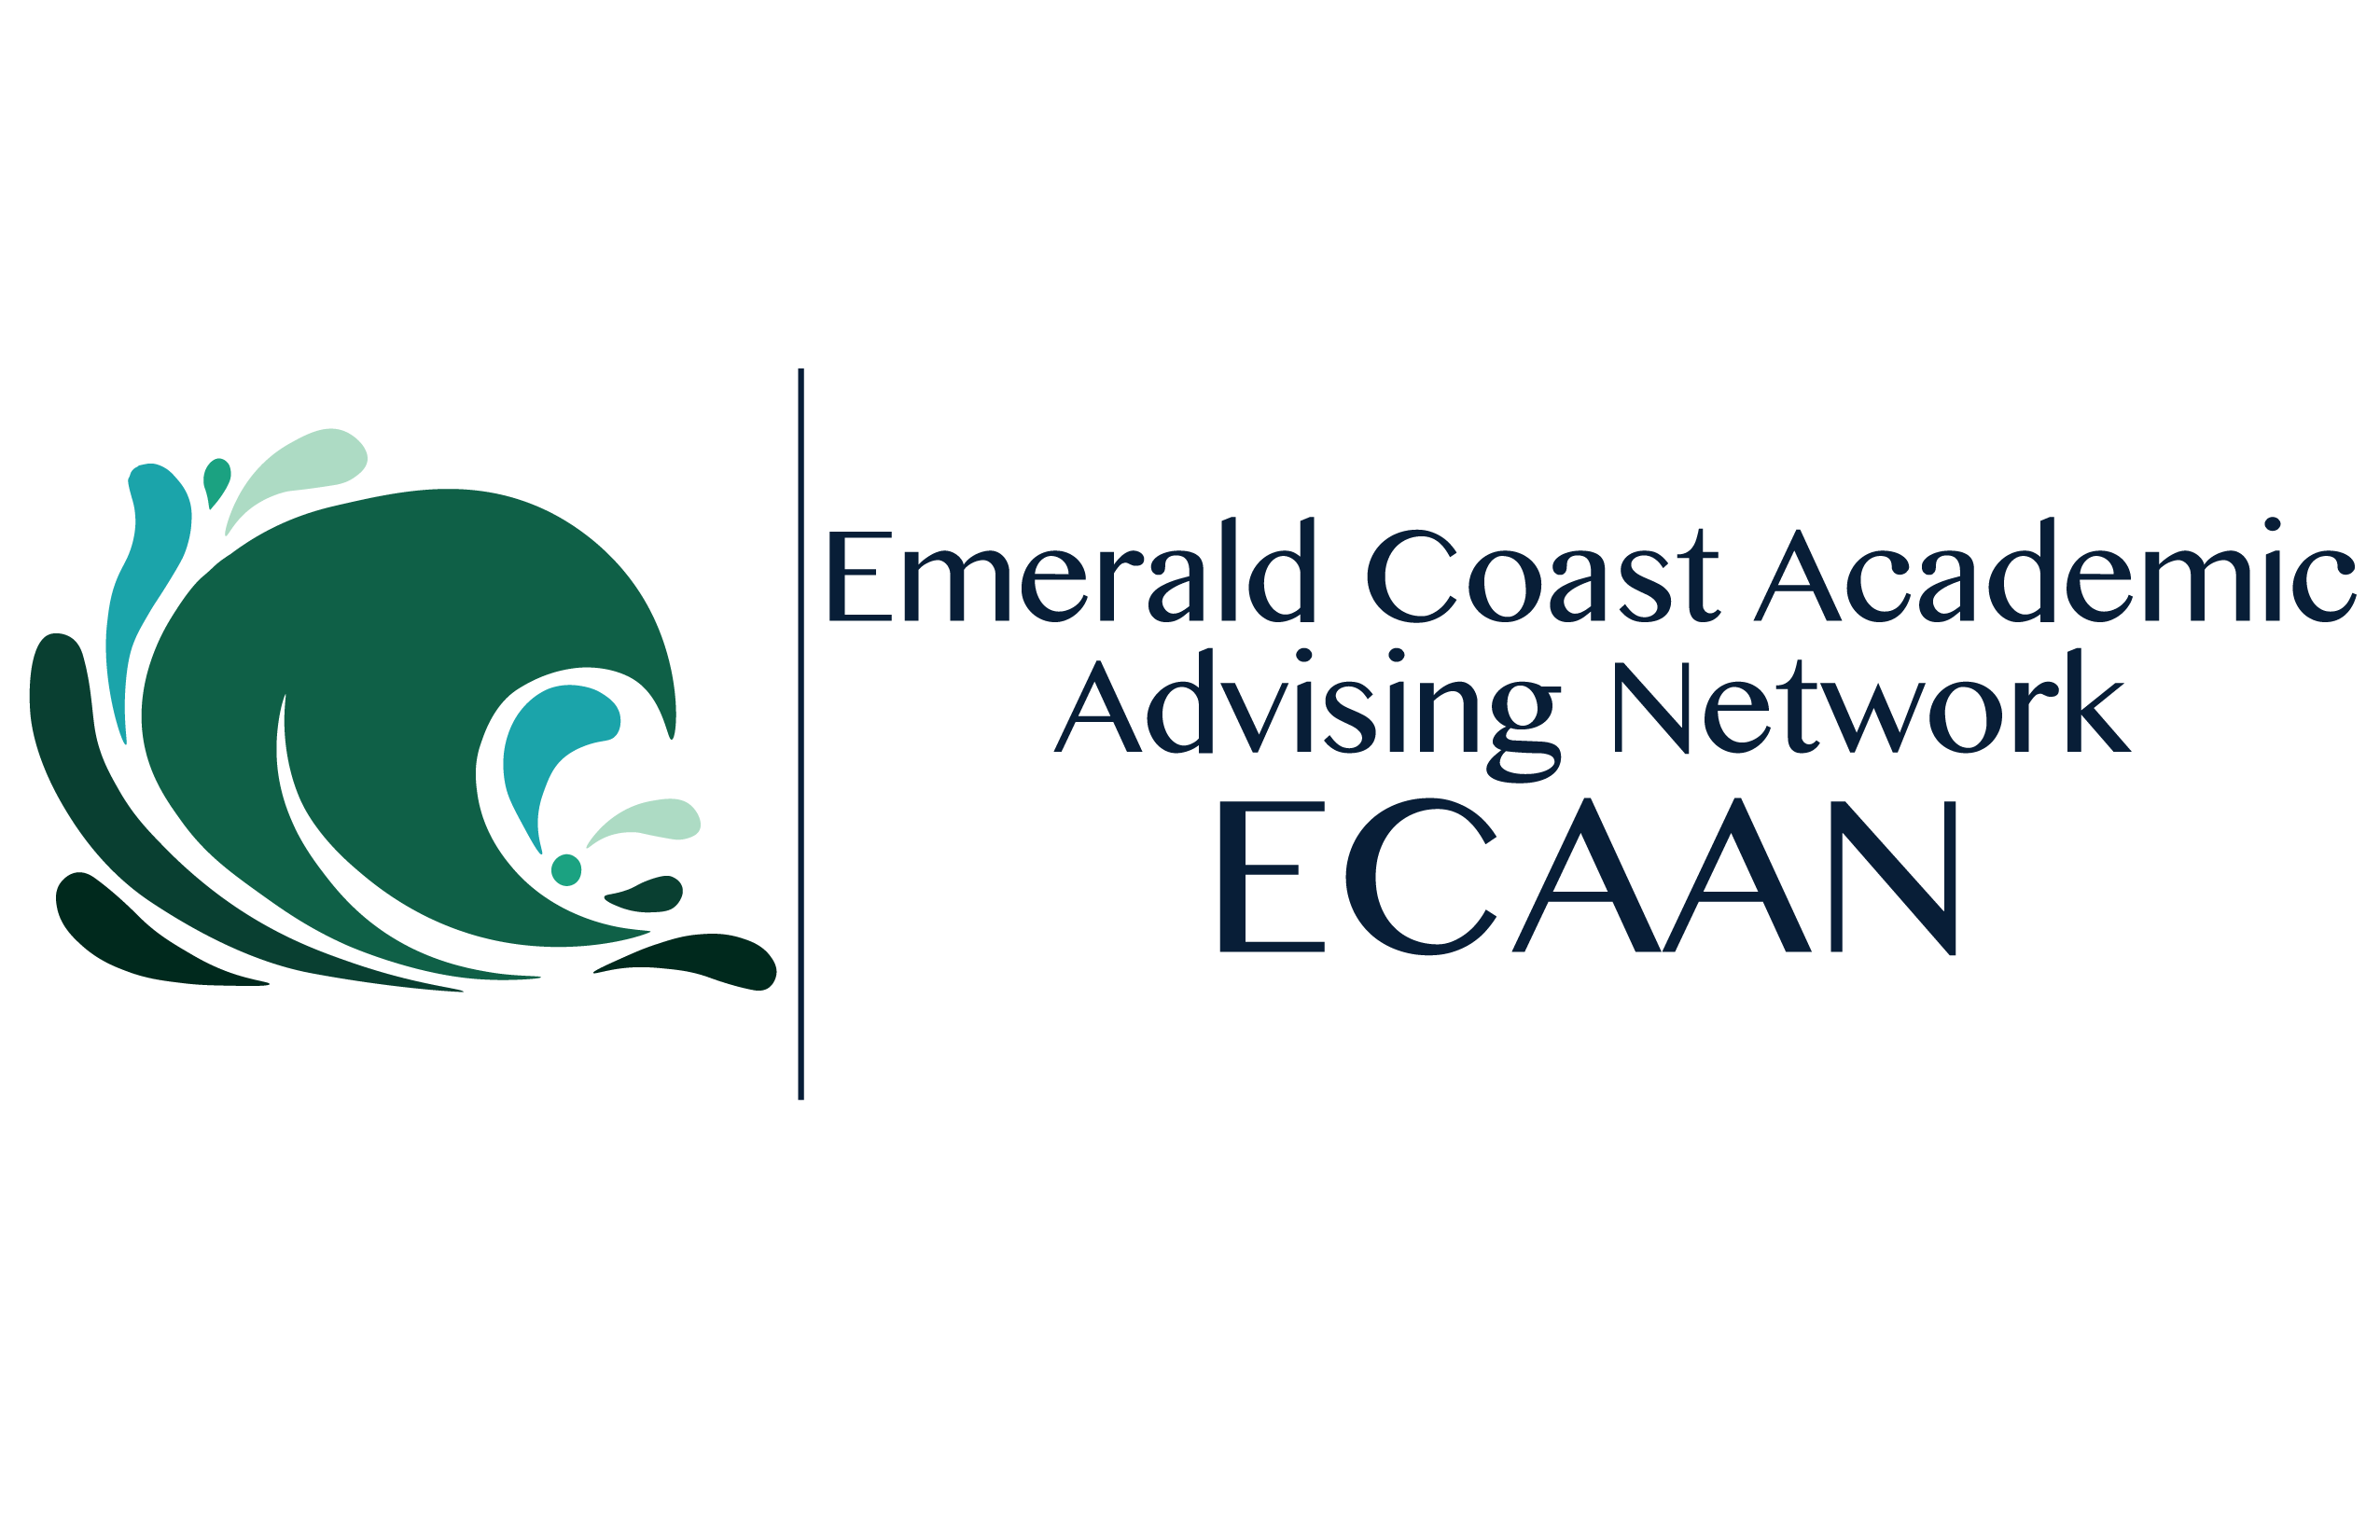 Organization logo which is a multicolored wave and the words Emerald Coast Academic Advising Network ECAAN